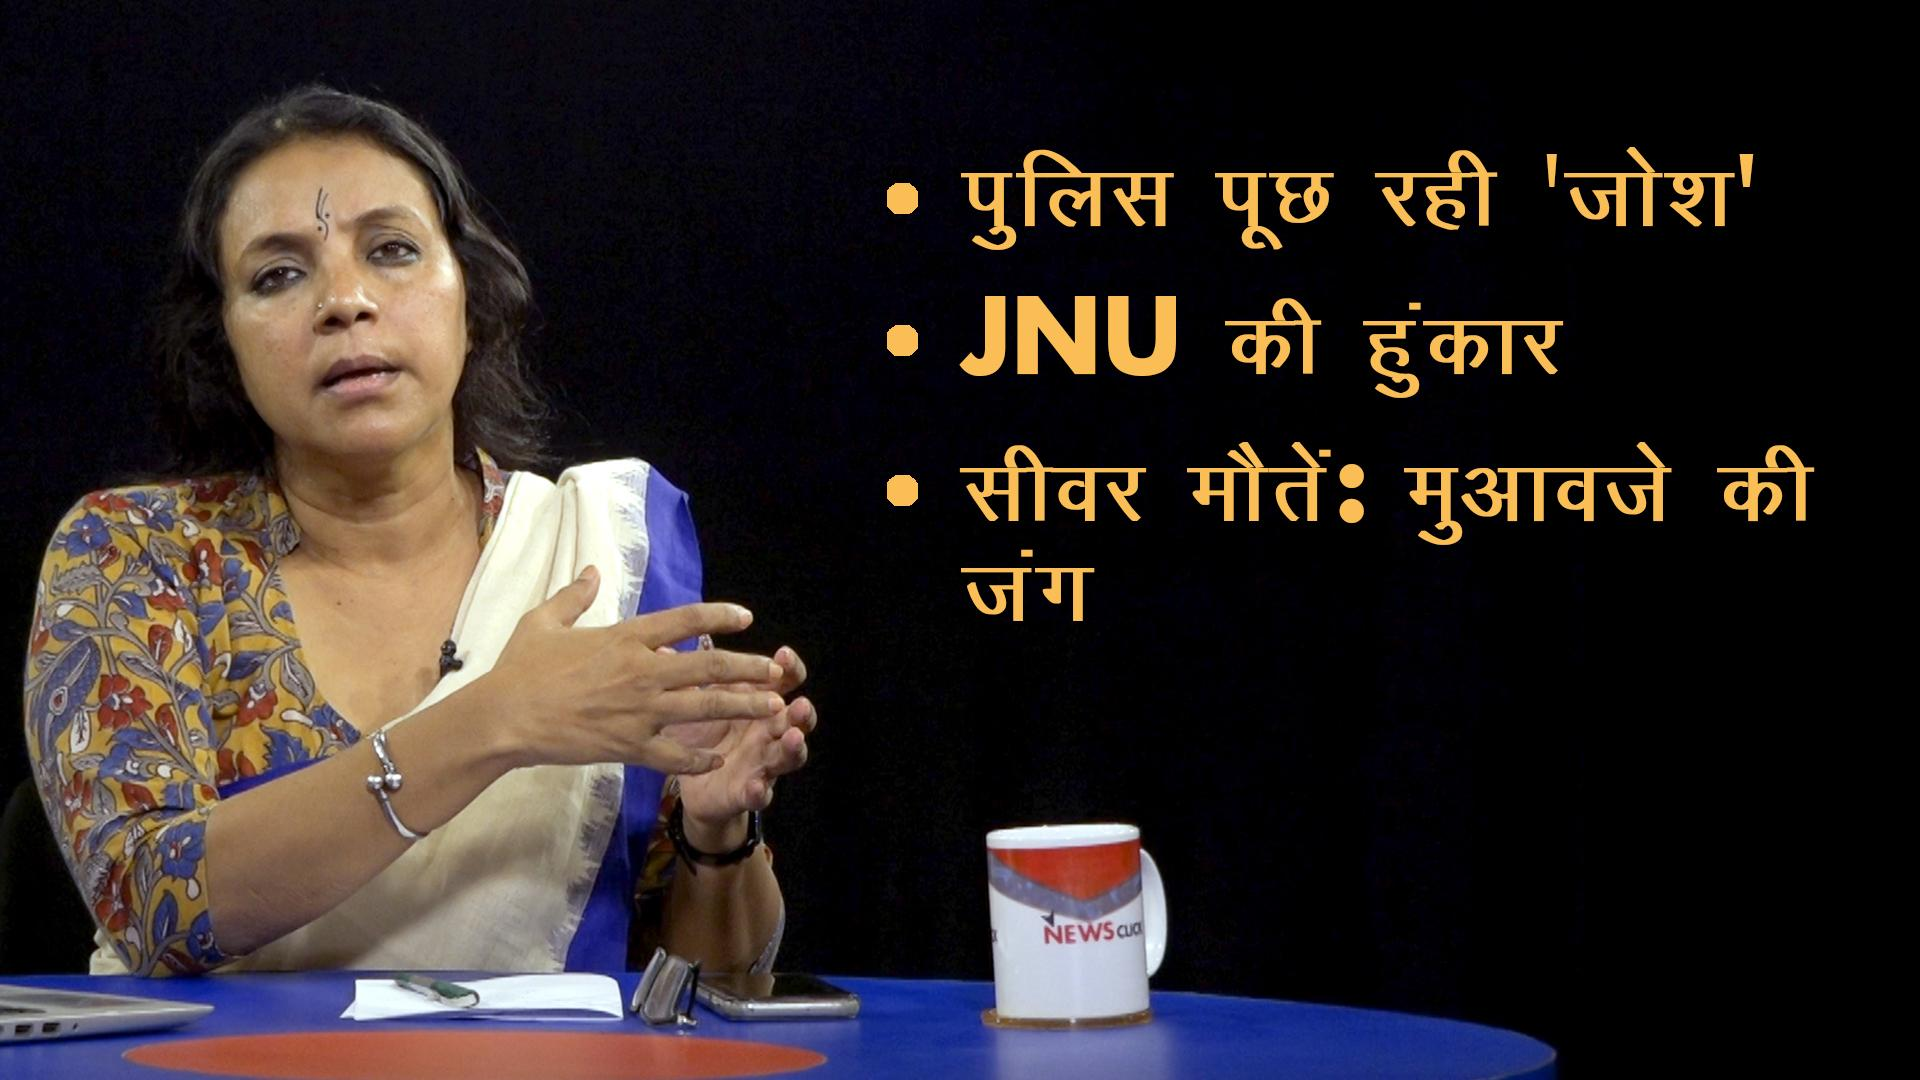 Bhasha on JNU